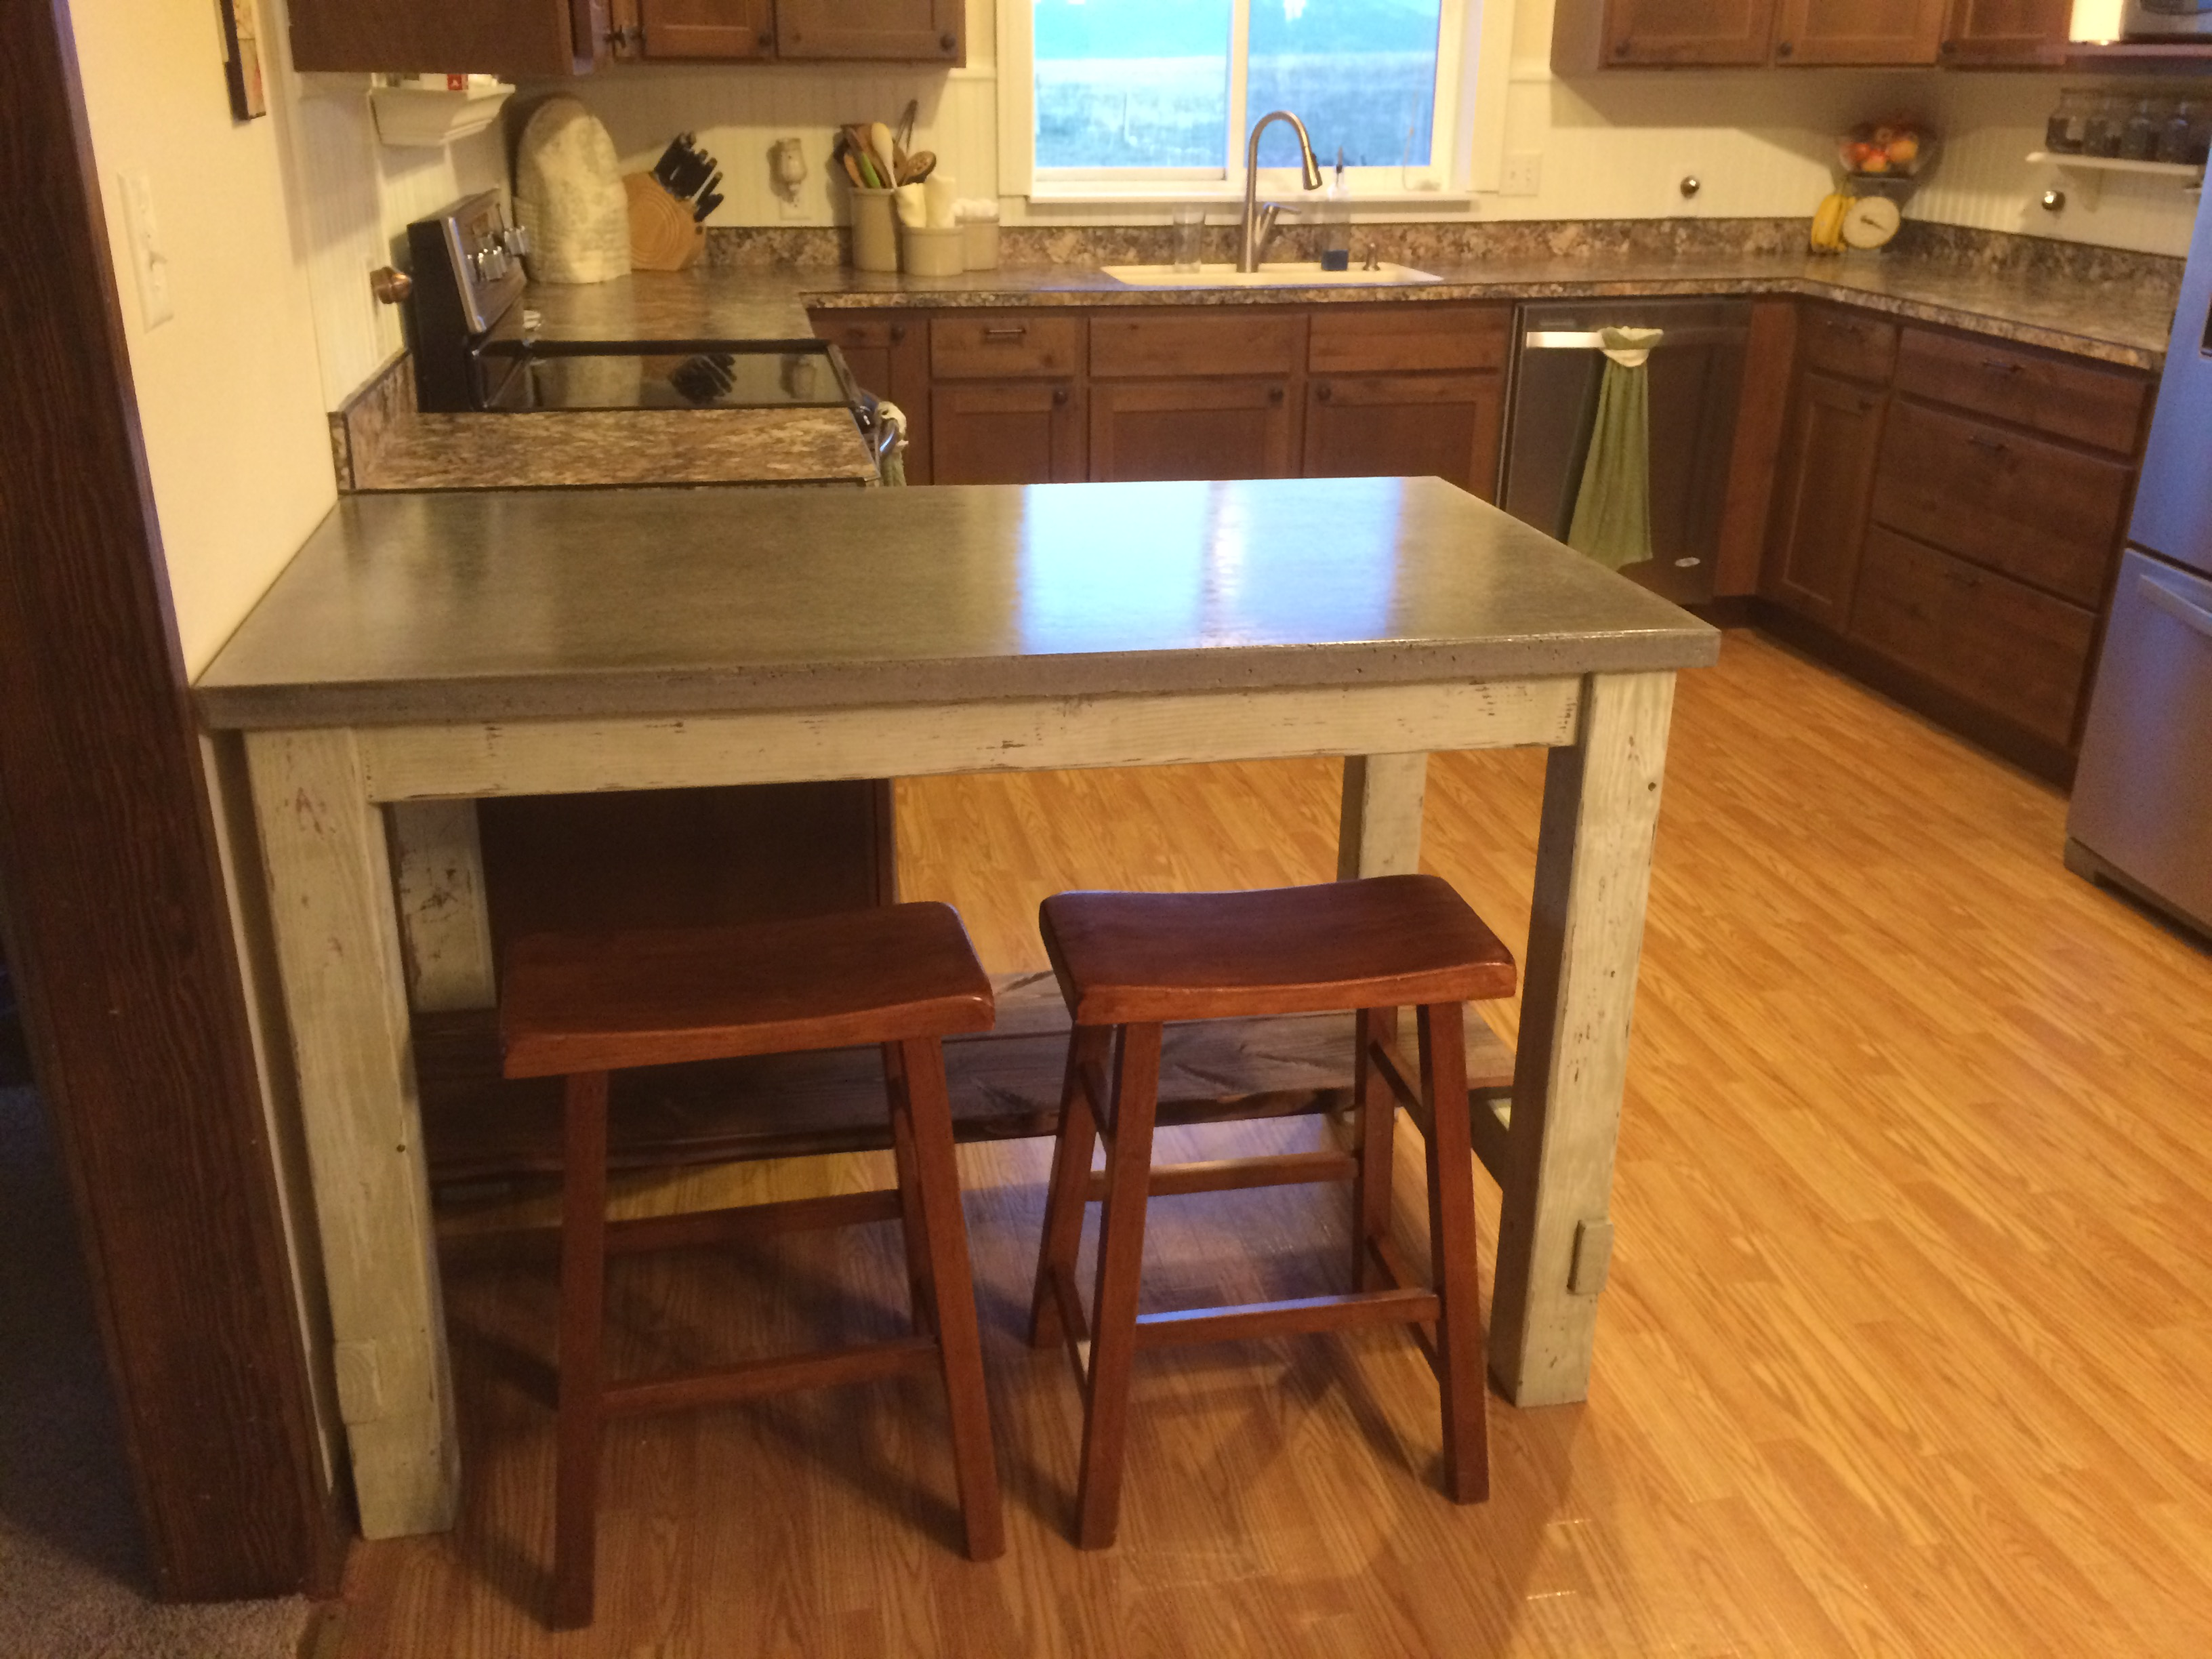 llc edges corners home concrete solcrete countertops countertop and